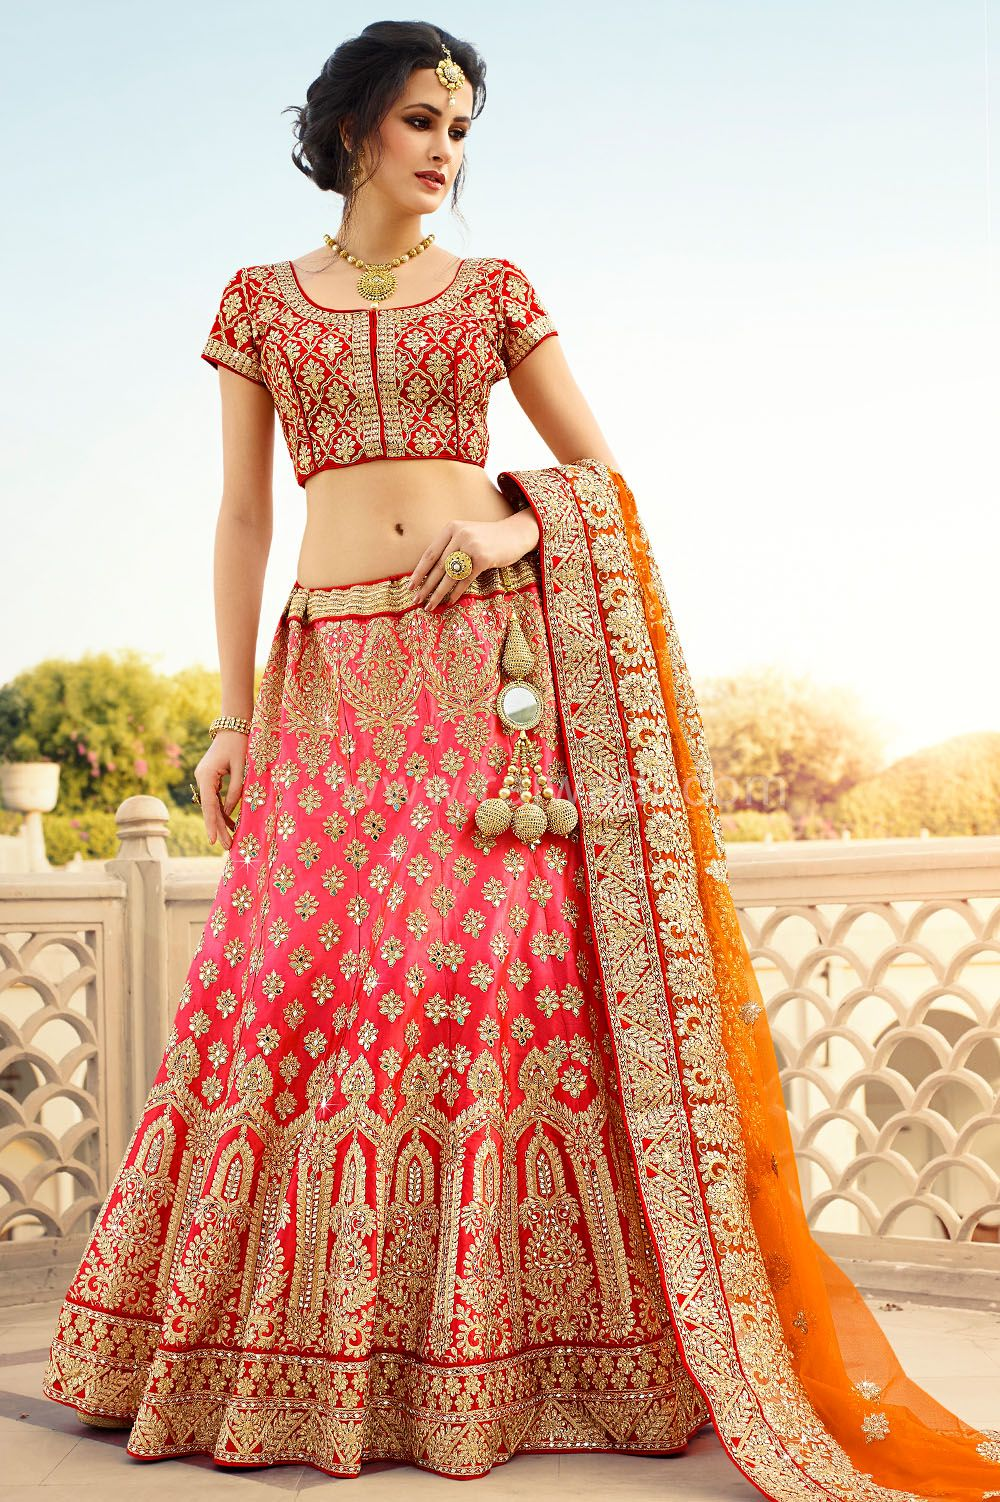 3ca126ee52 Bridal Wear Red and Orange coloured Lehenga Choli #RajwadiLehengas #Lehengas  #BridalLehengas #Red #Orange #FeelRoyal